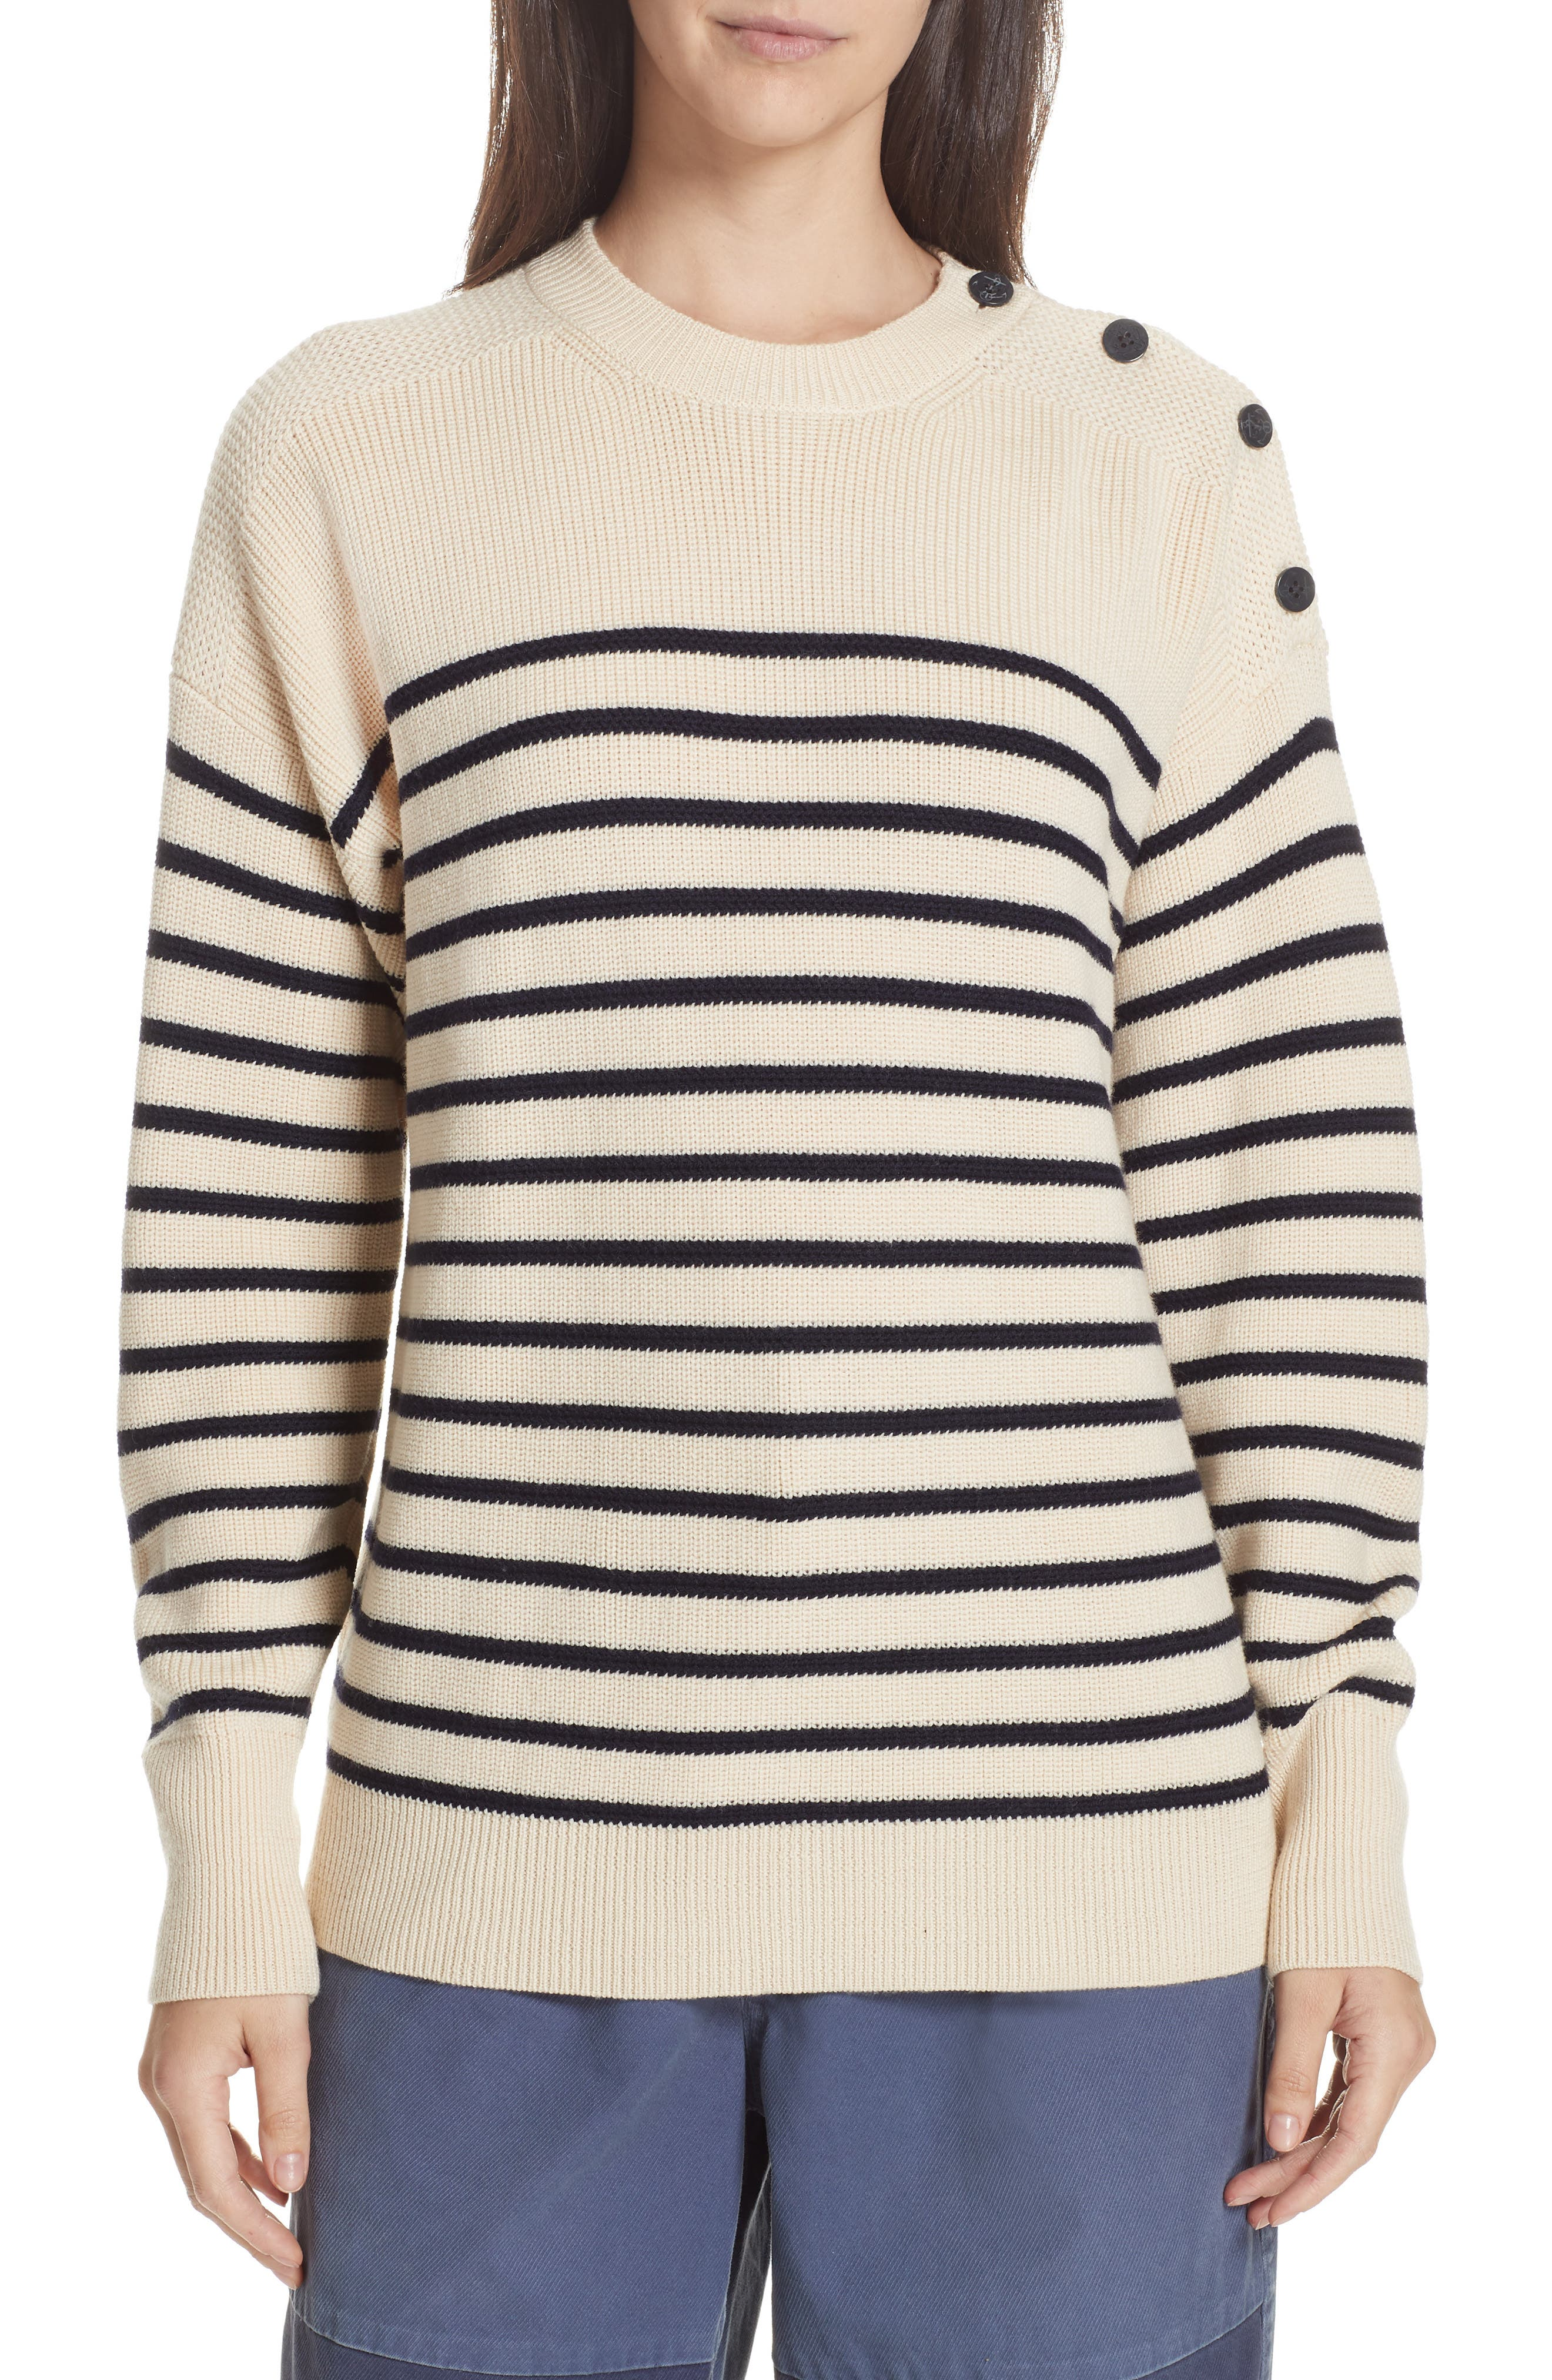 Stripe Wool Sweater,                             Main thumbnail 1, color,                             CREAM/ NAVY